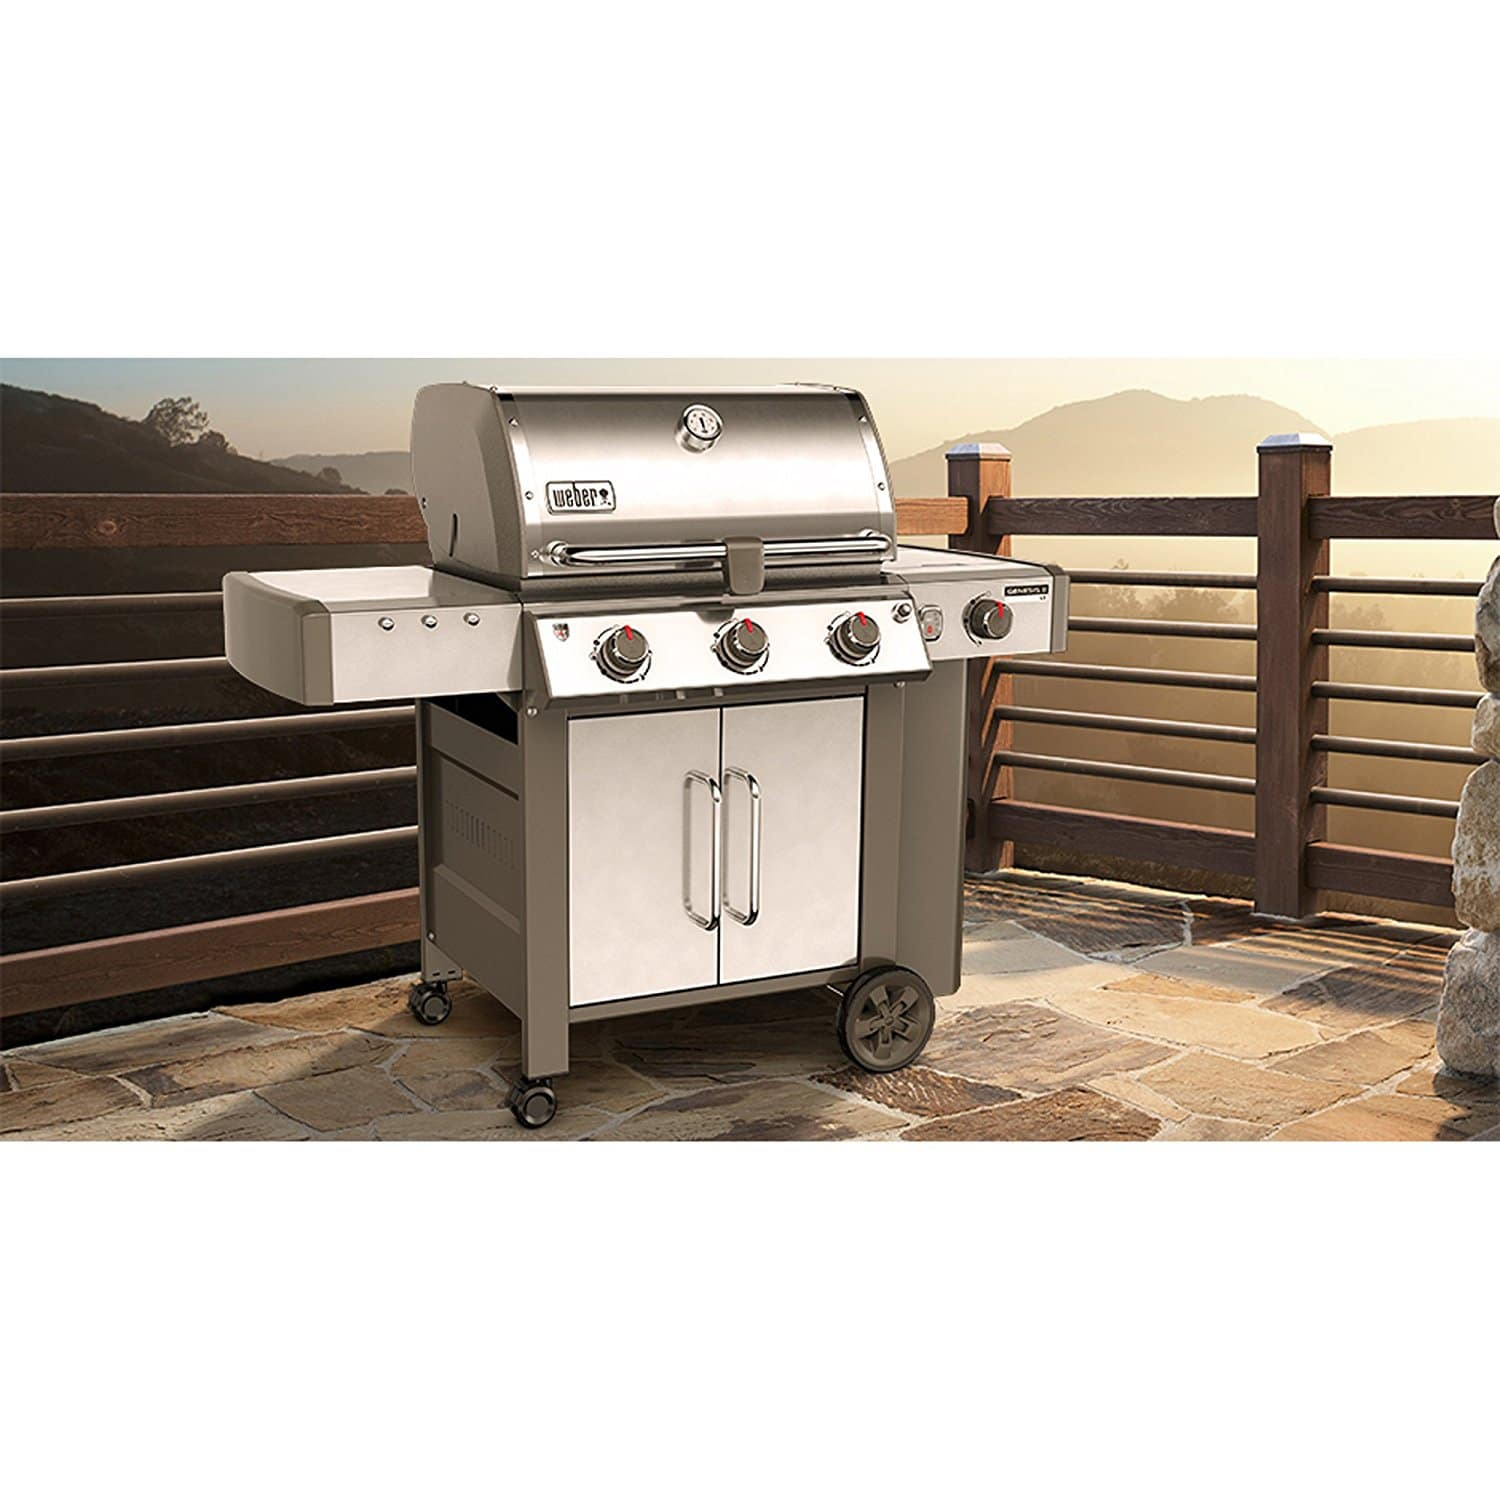 weber 61004001 genesis ii lx s 340 liquid propane grill the grilling life. Black Bedroom Furniture Sets. Home Design Ideas